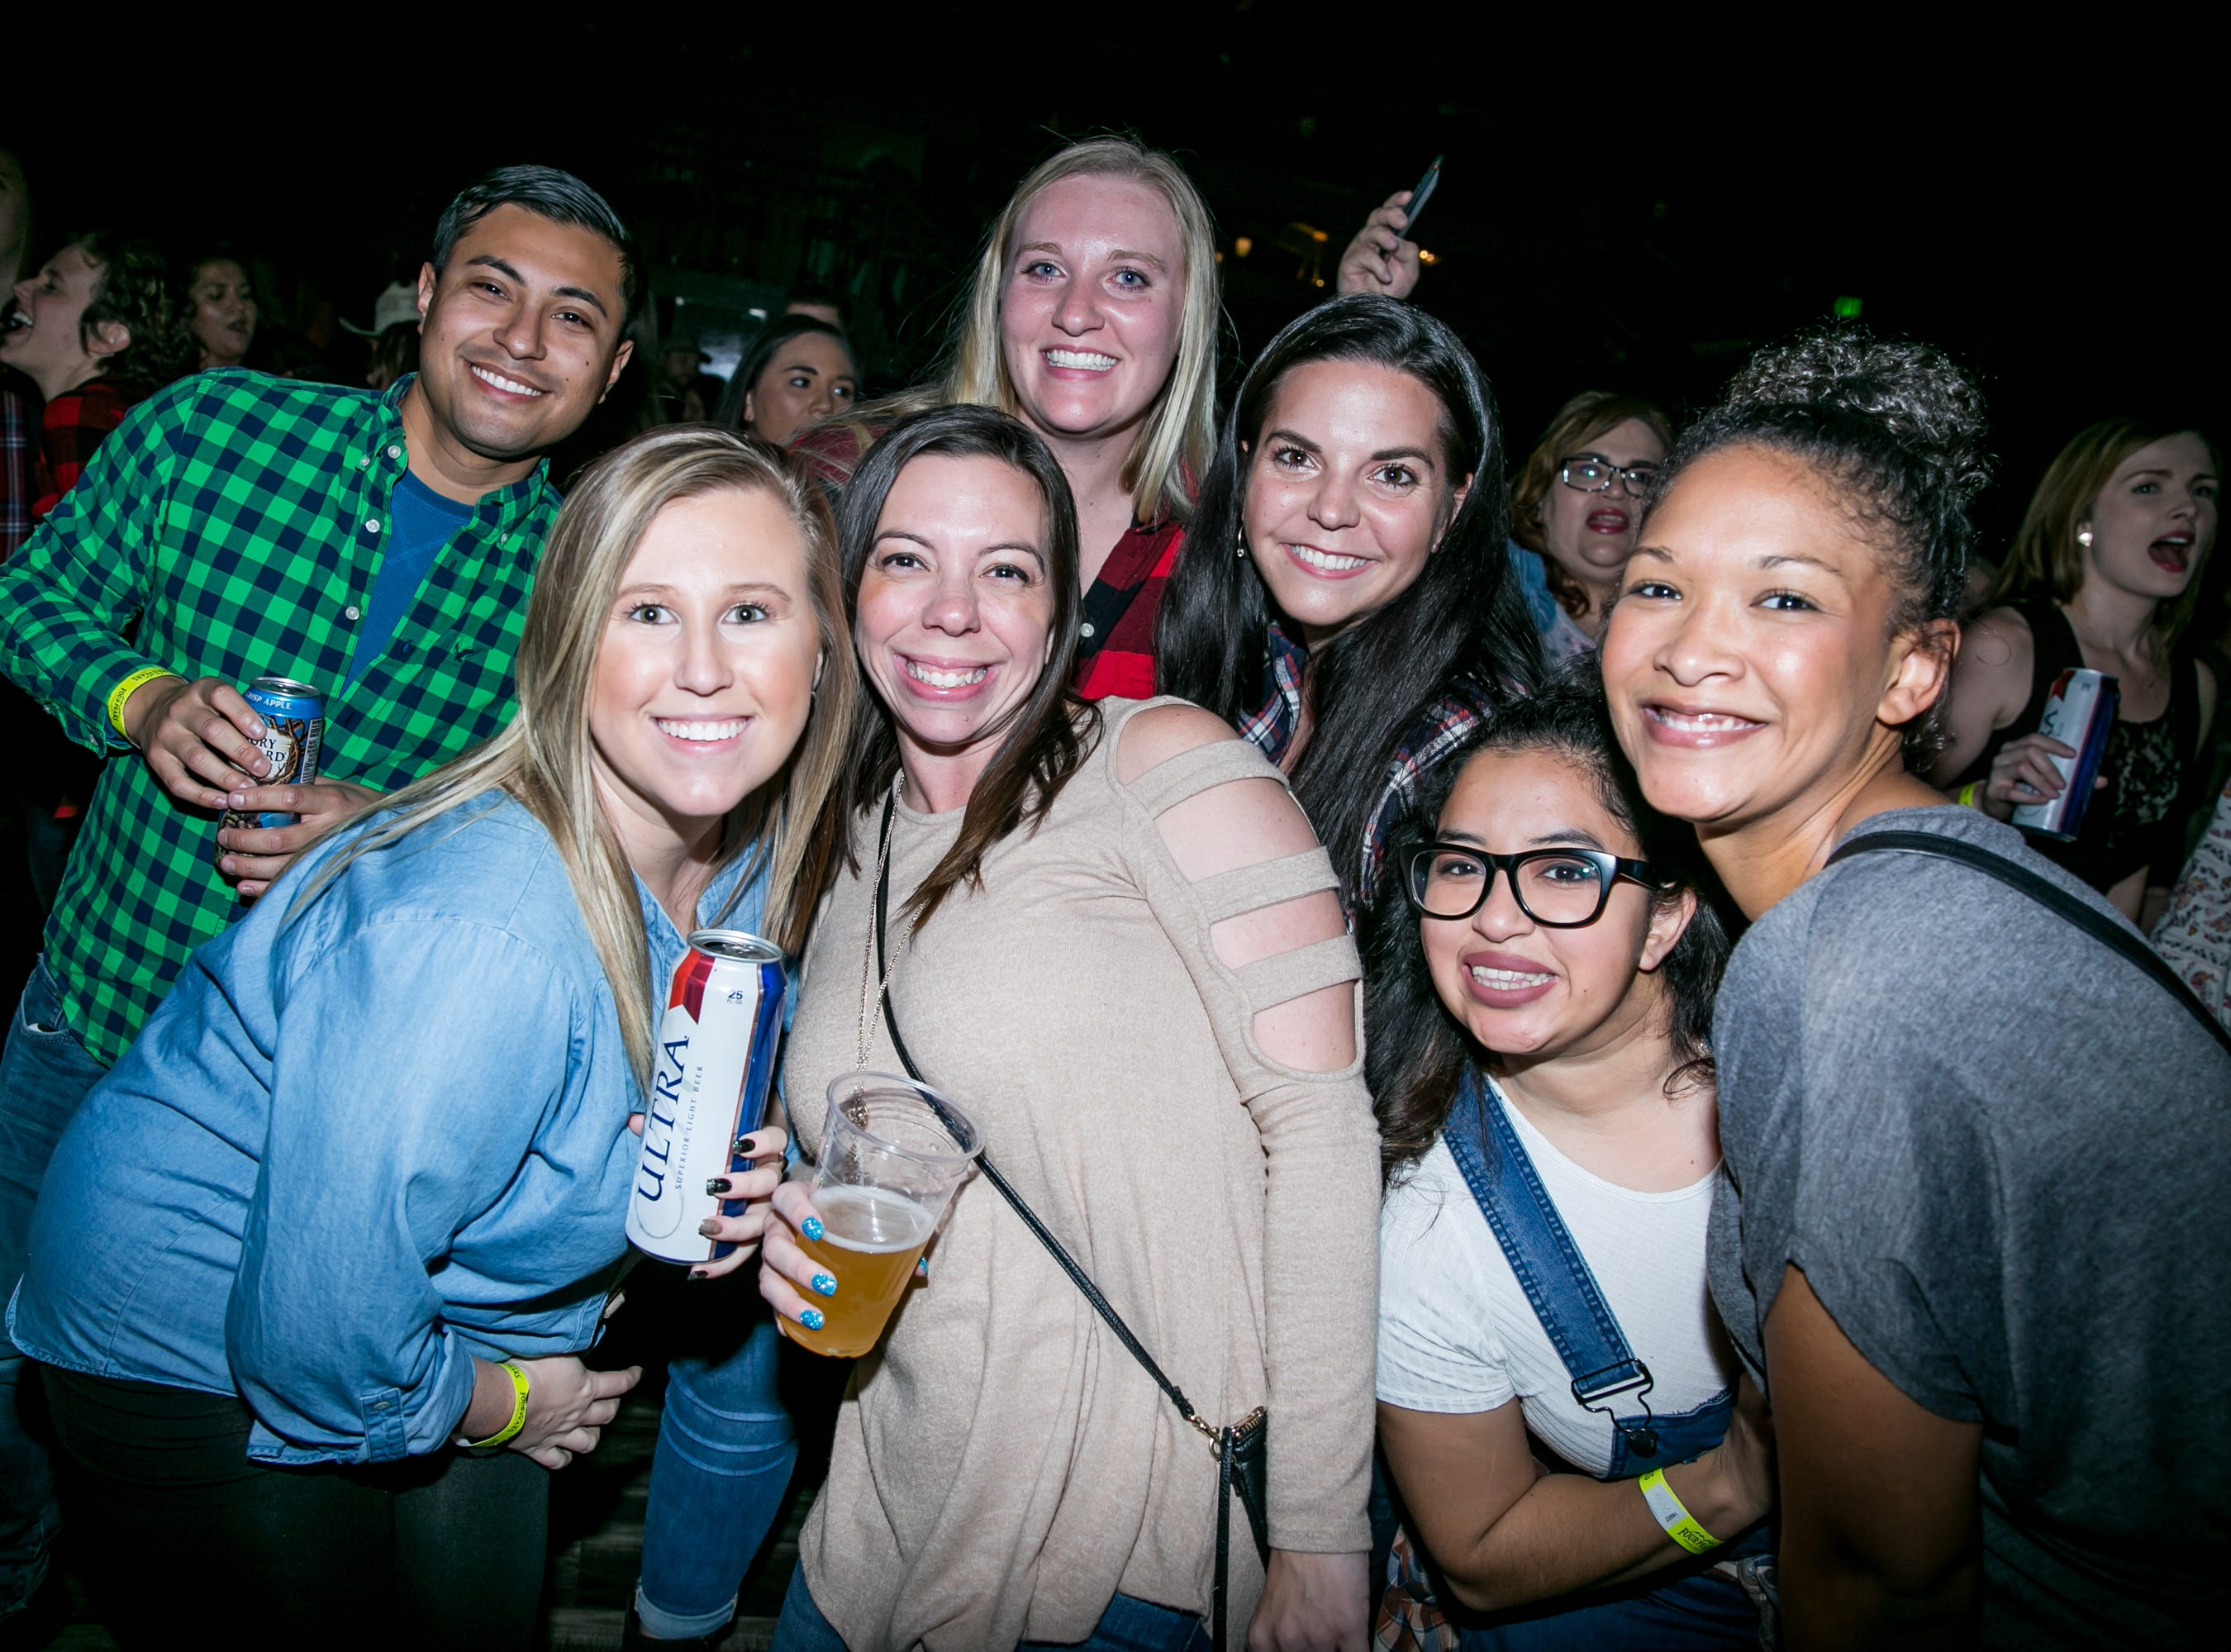 These pals got rowdy during the KMLE Country 90's Throwback at The Van Buren on Friday, Jan. 11, 2019.